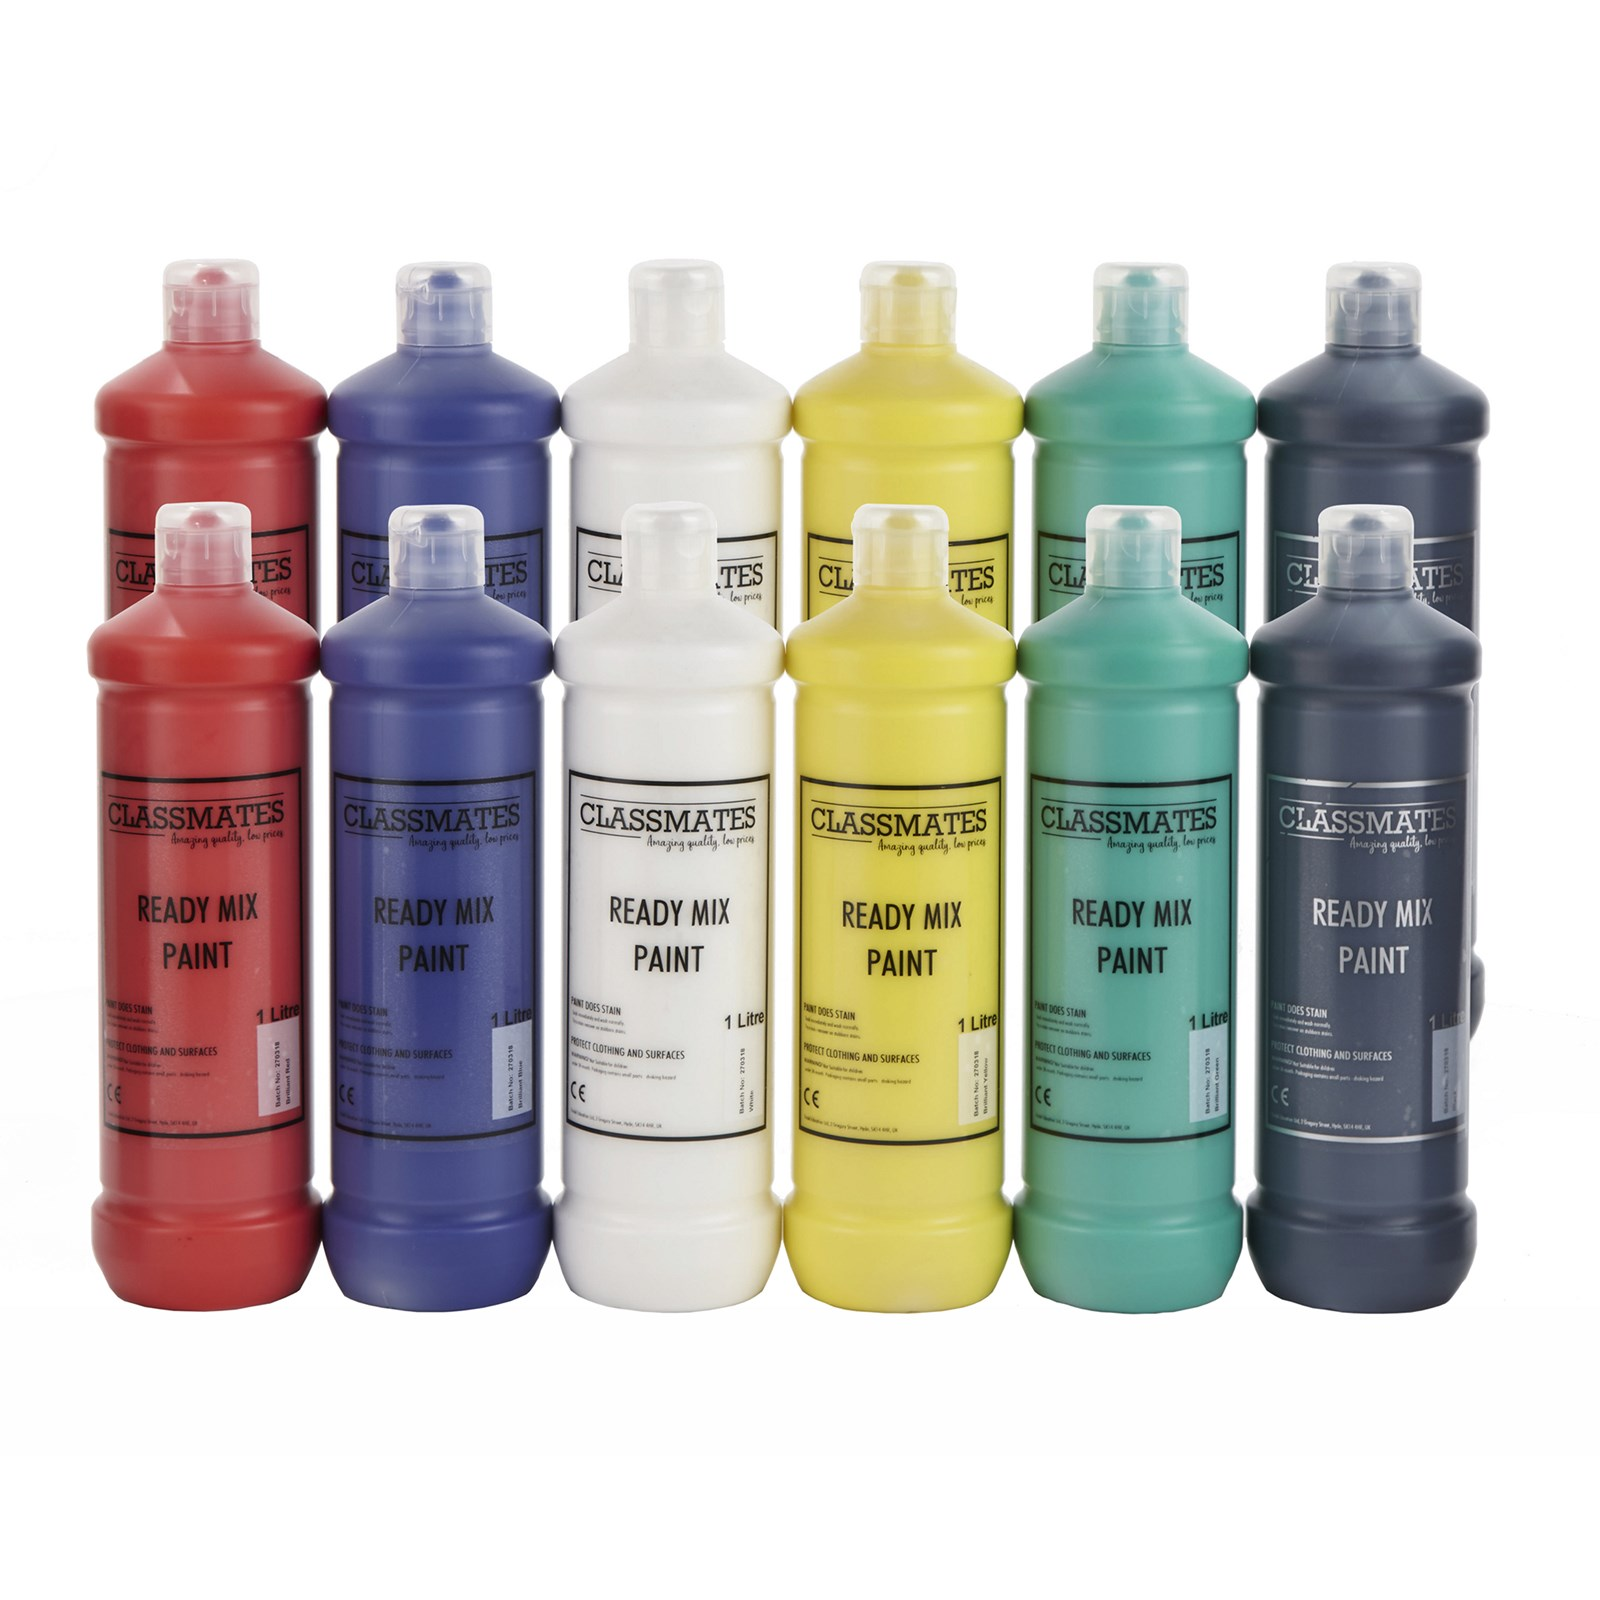 Classmates Ready Mixed Paint in Assorted - Pack of 12 - 1 Litre Bottle